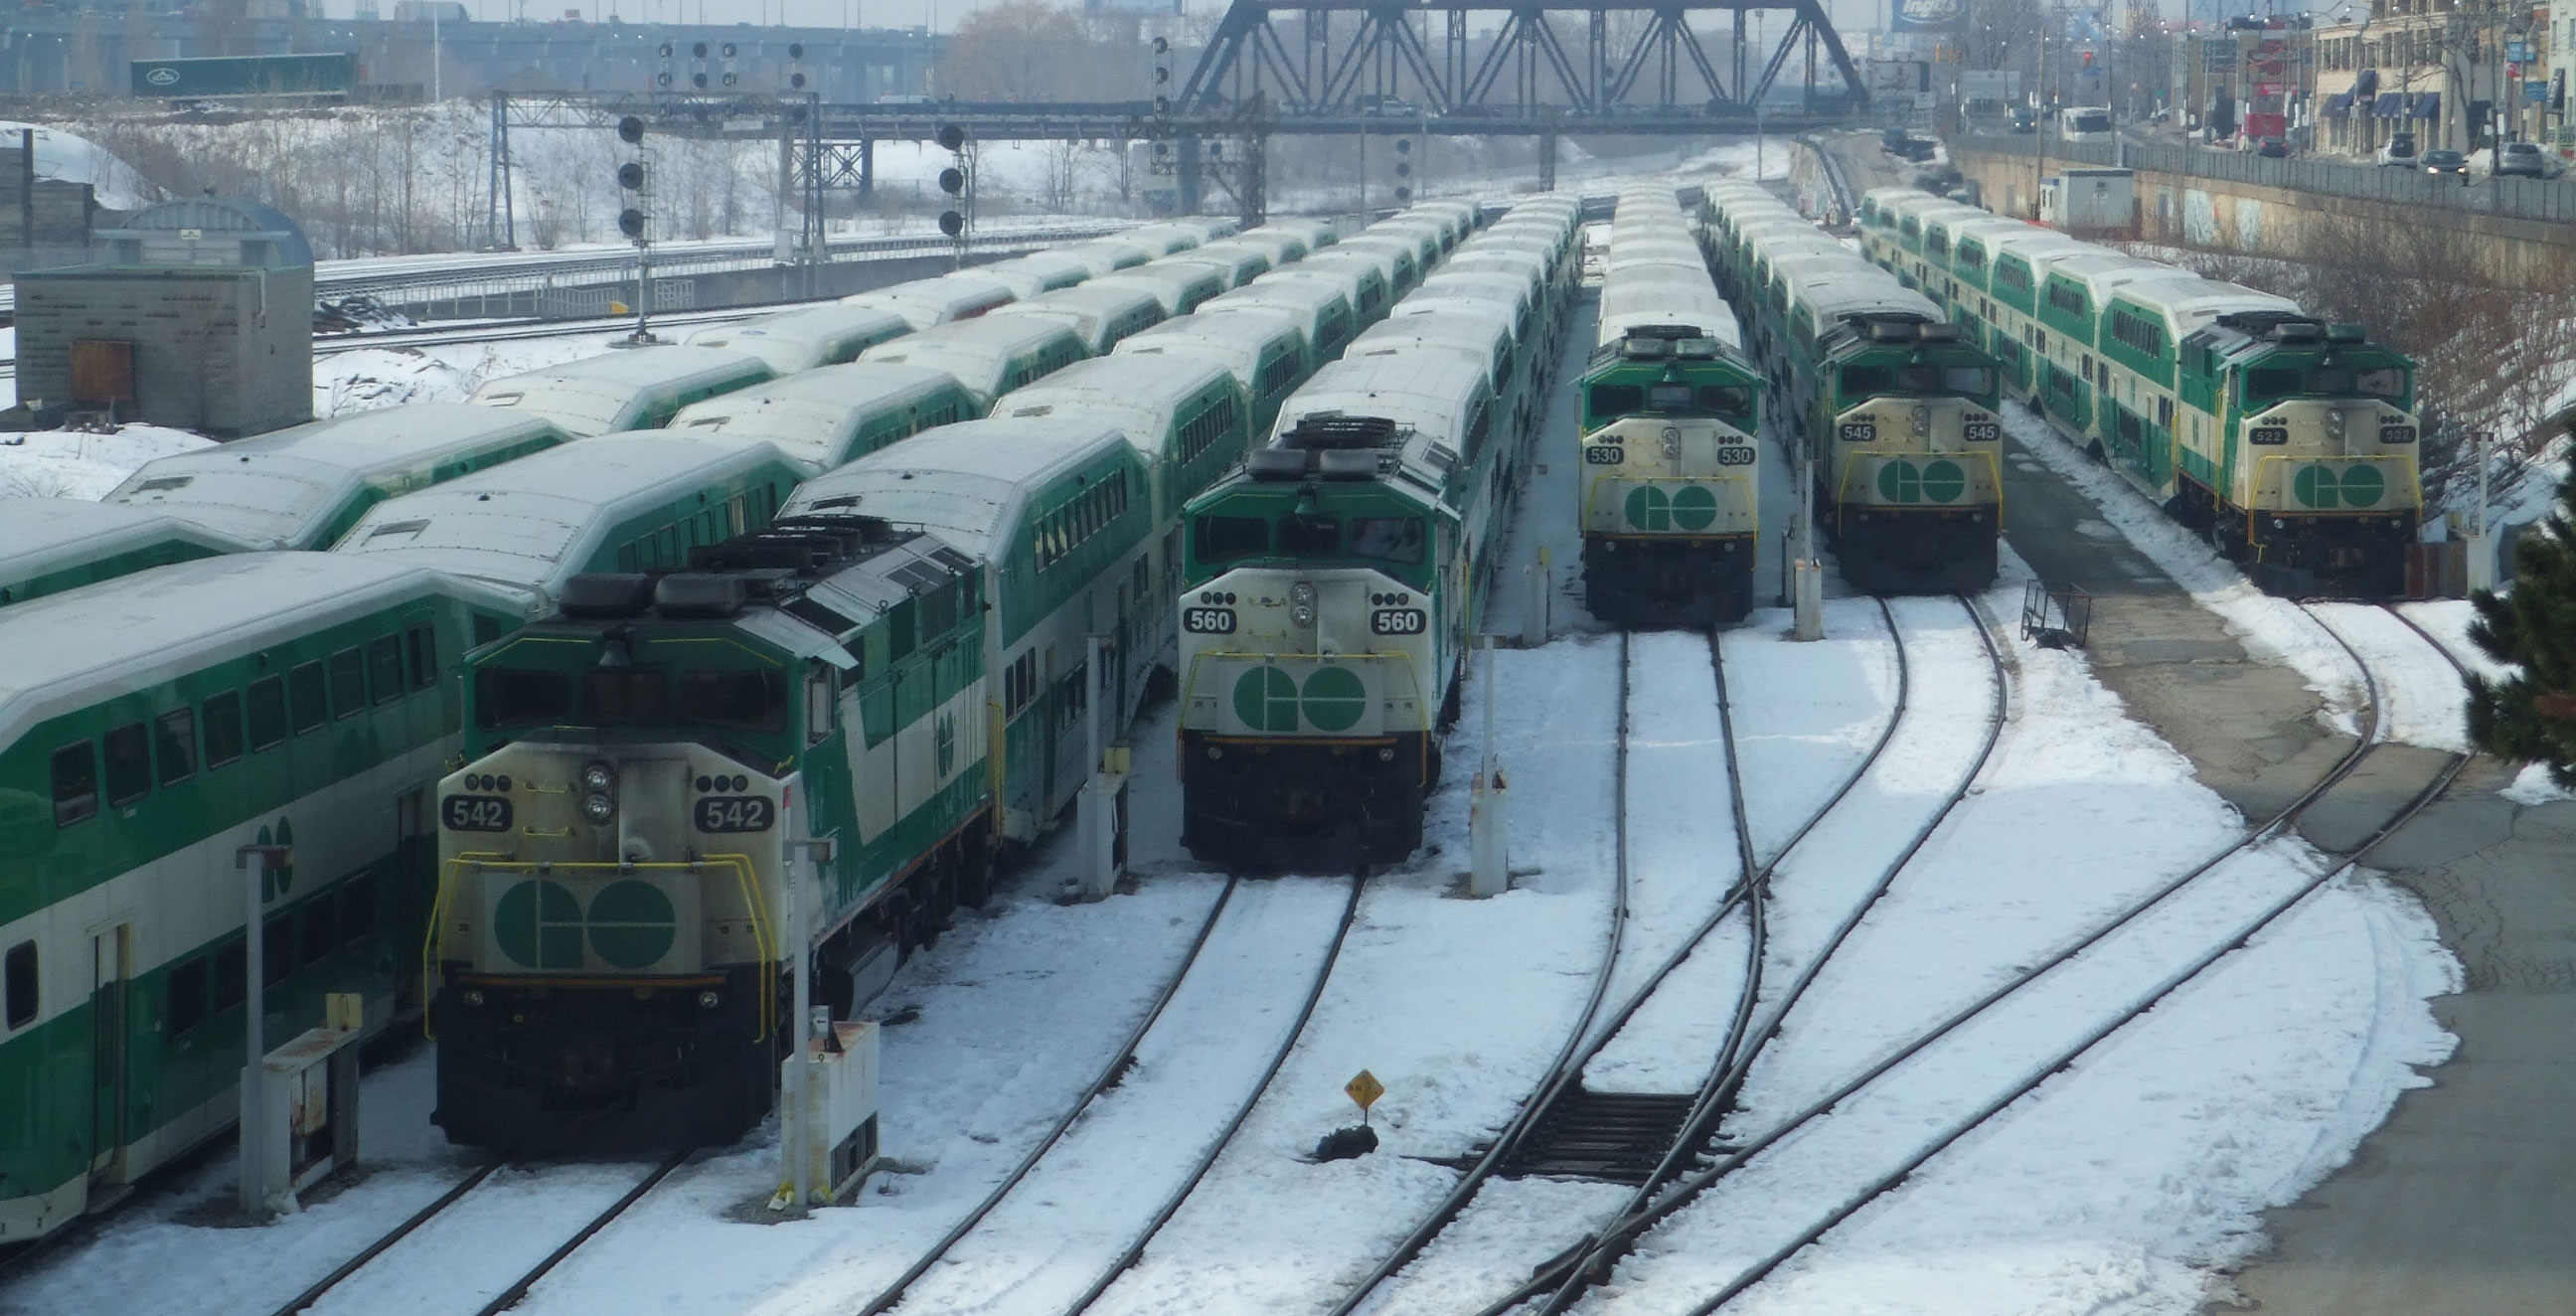 Free onboard Wi-Fi coming to Go Transit, says Ontario government